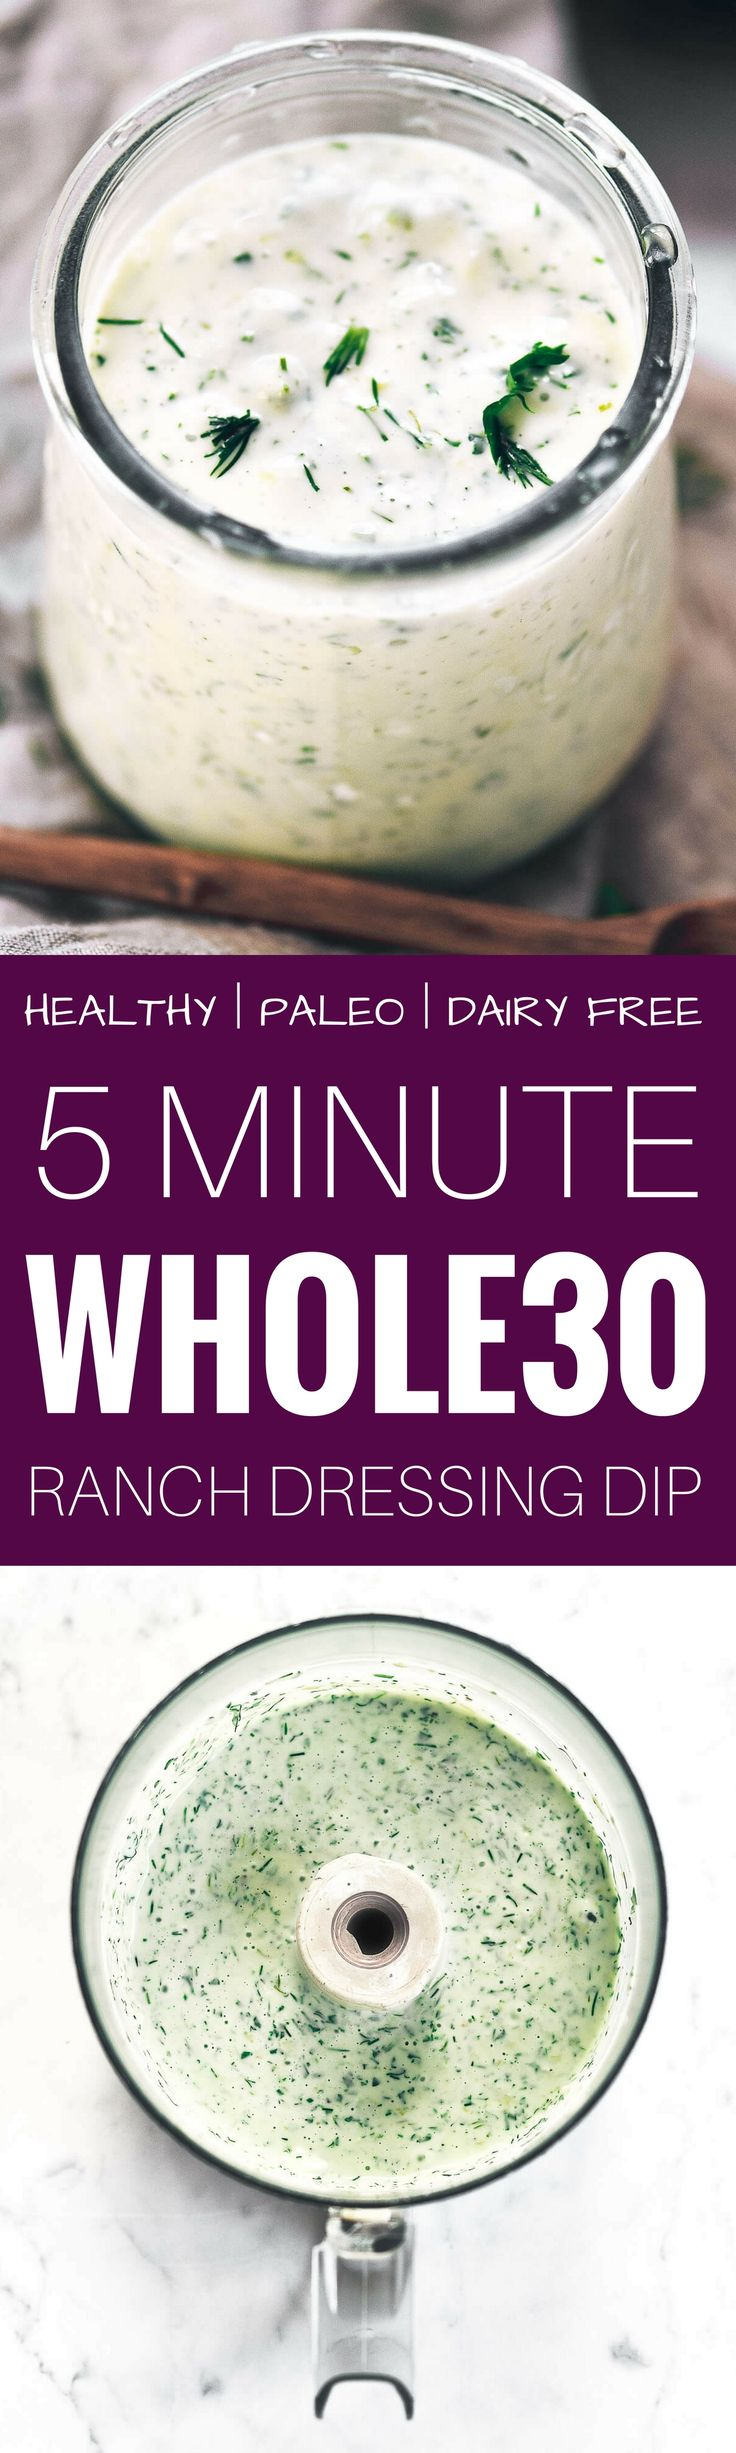 Creamy whole30 ranch dressing dip. Easy paleo ranch dressing recipe. Dairy free ranch dressing. Dairy free ranch dip. Best easy dairy free ranch recipe. Easy whole30 dinner recipes. Whole30 recipes. Whole30 lunch. Whole30 recipes just for you. Whole30 mea